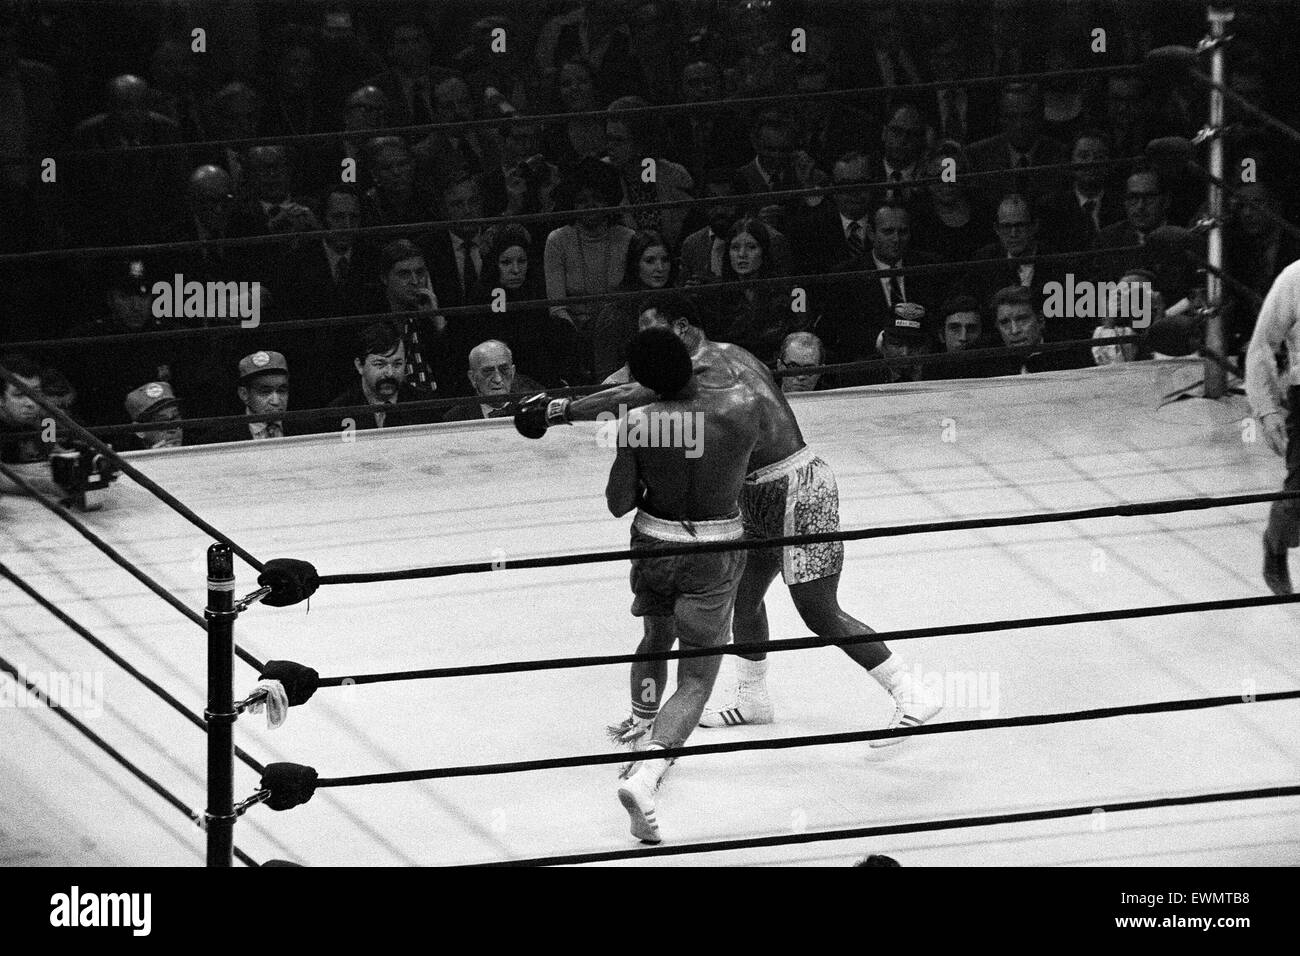 Muhammad Ali and Joe Frazier battle it out for the World Heavyweight Championship in Madison Square Garden New York - Stock Image